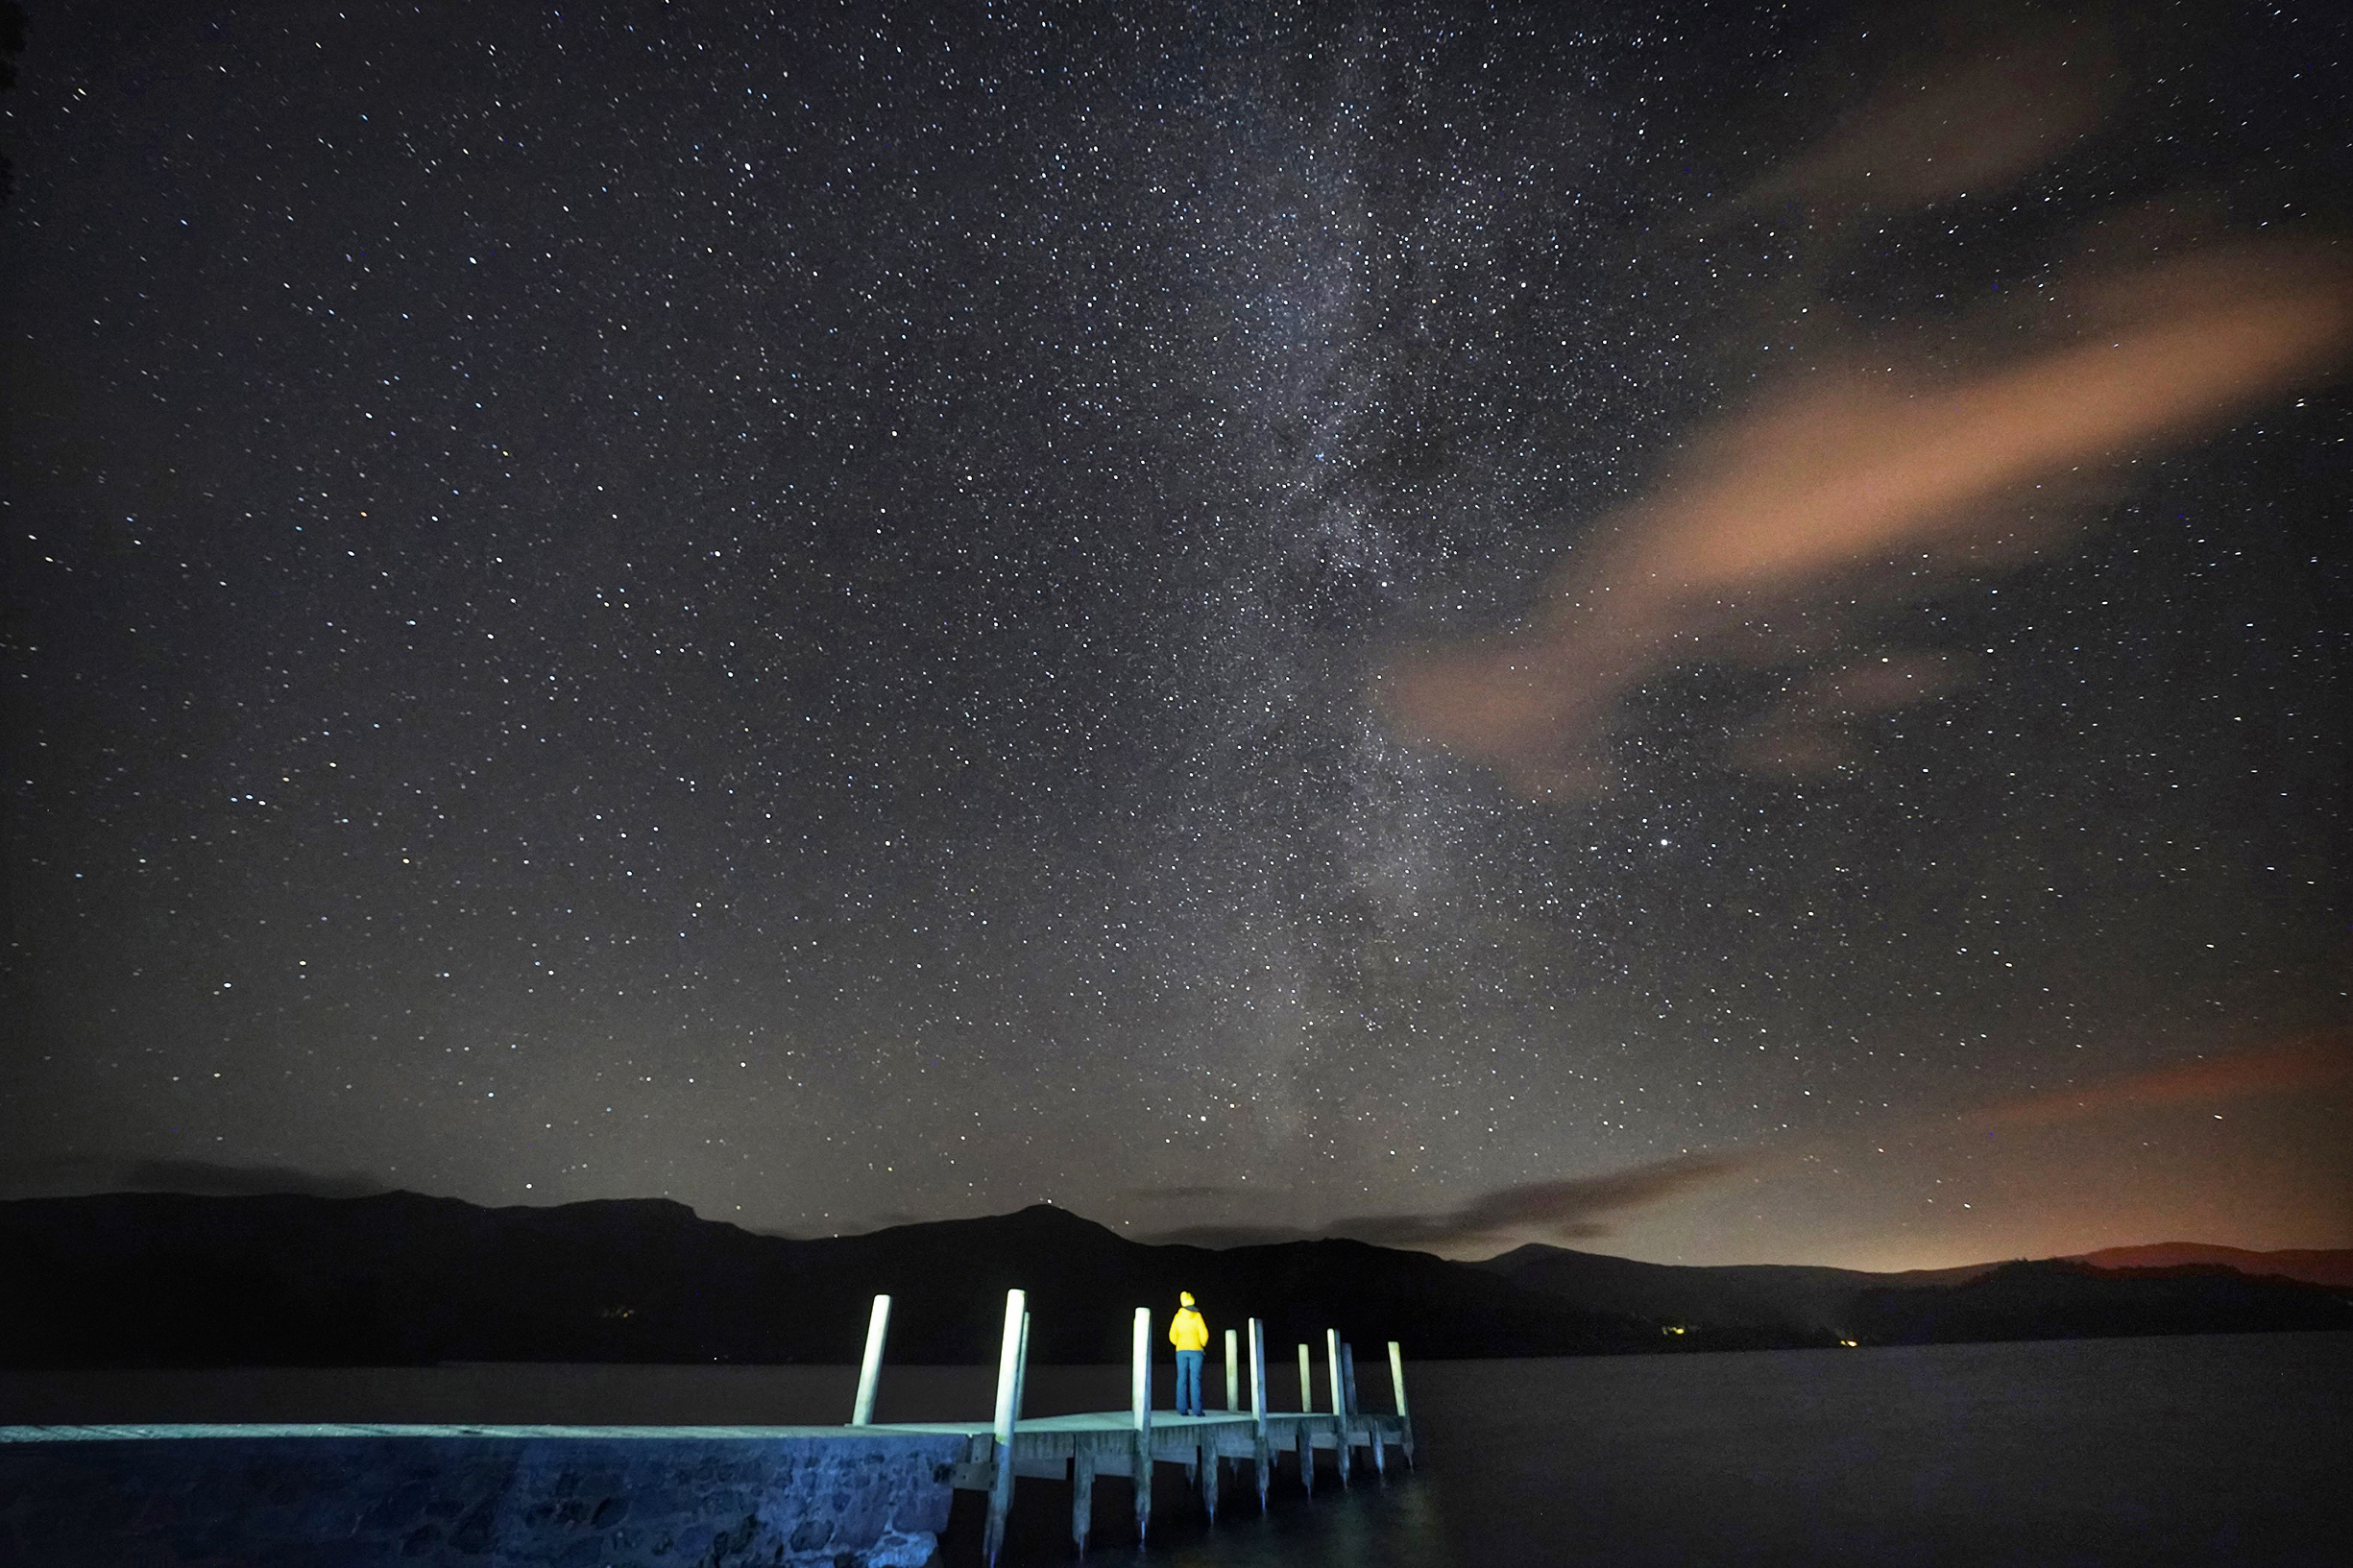 The Milky Way seen above Derwentwater in the Lake District.